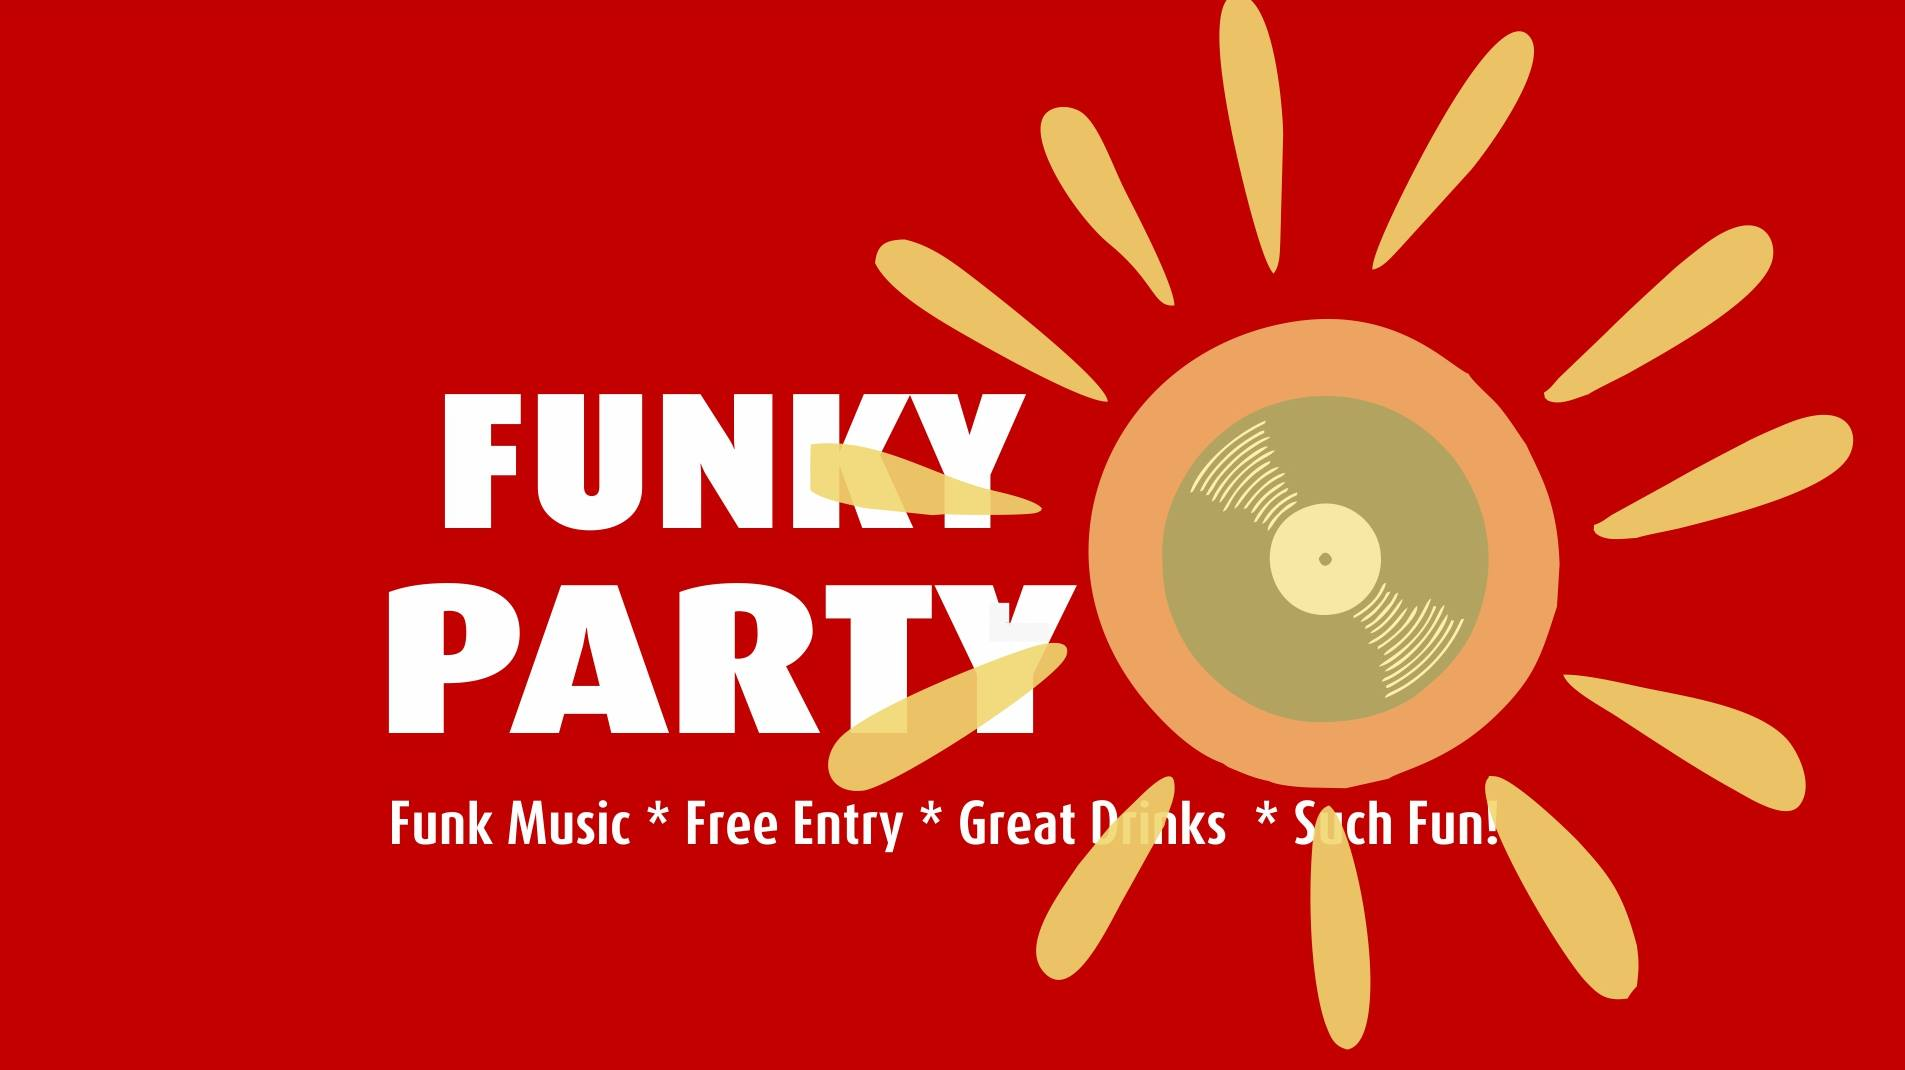 Funky Party in Spaţiu – see you soon!